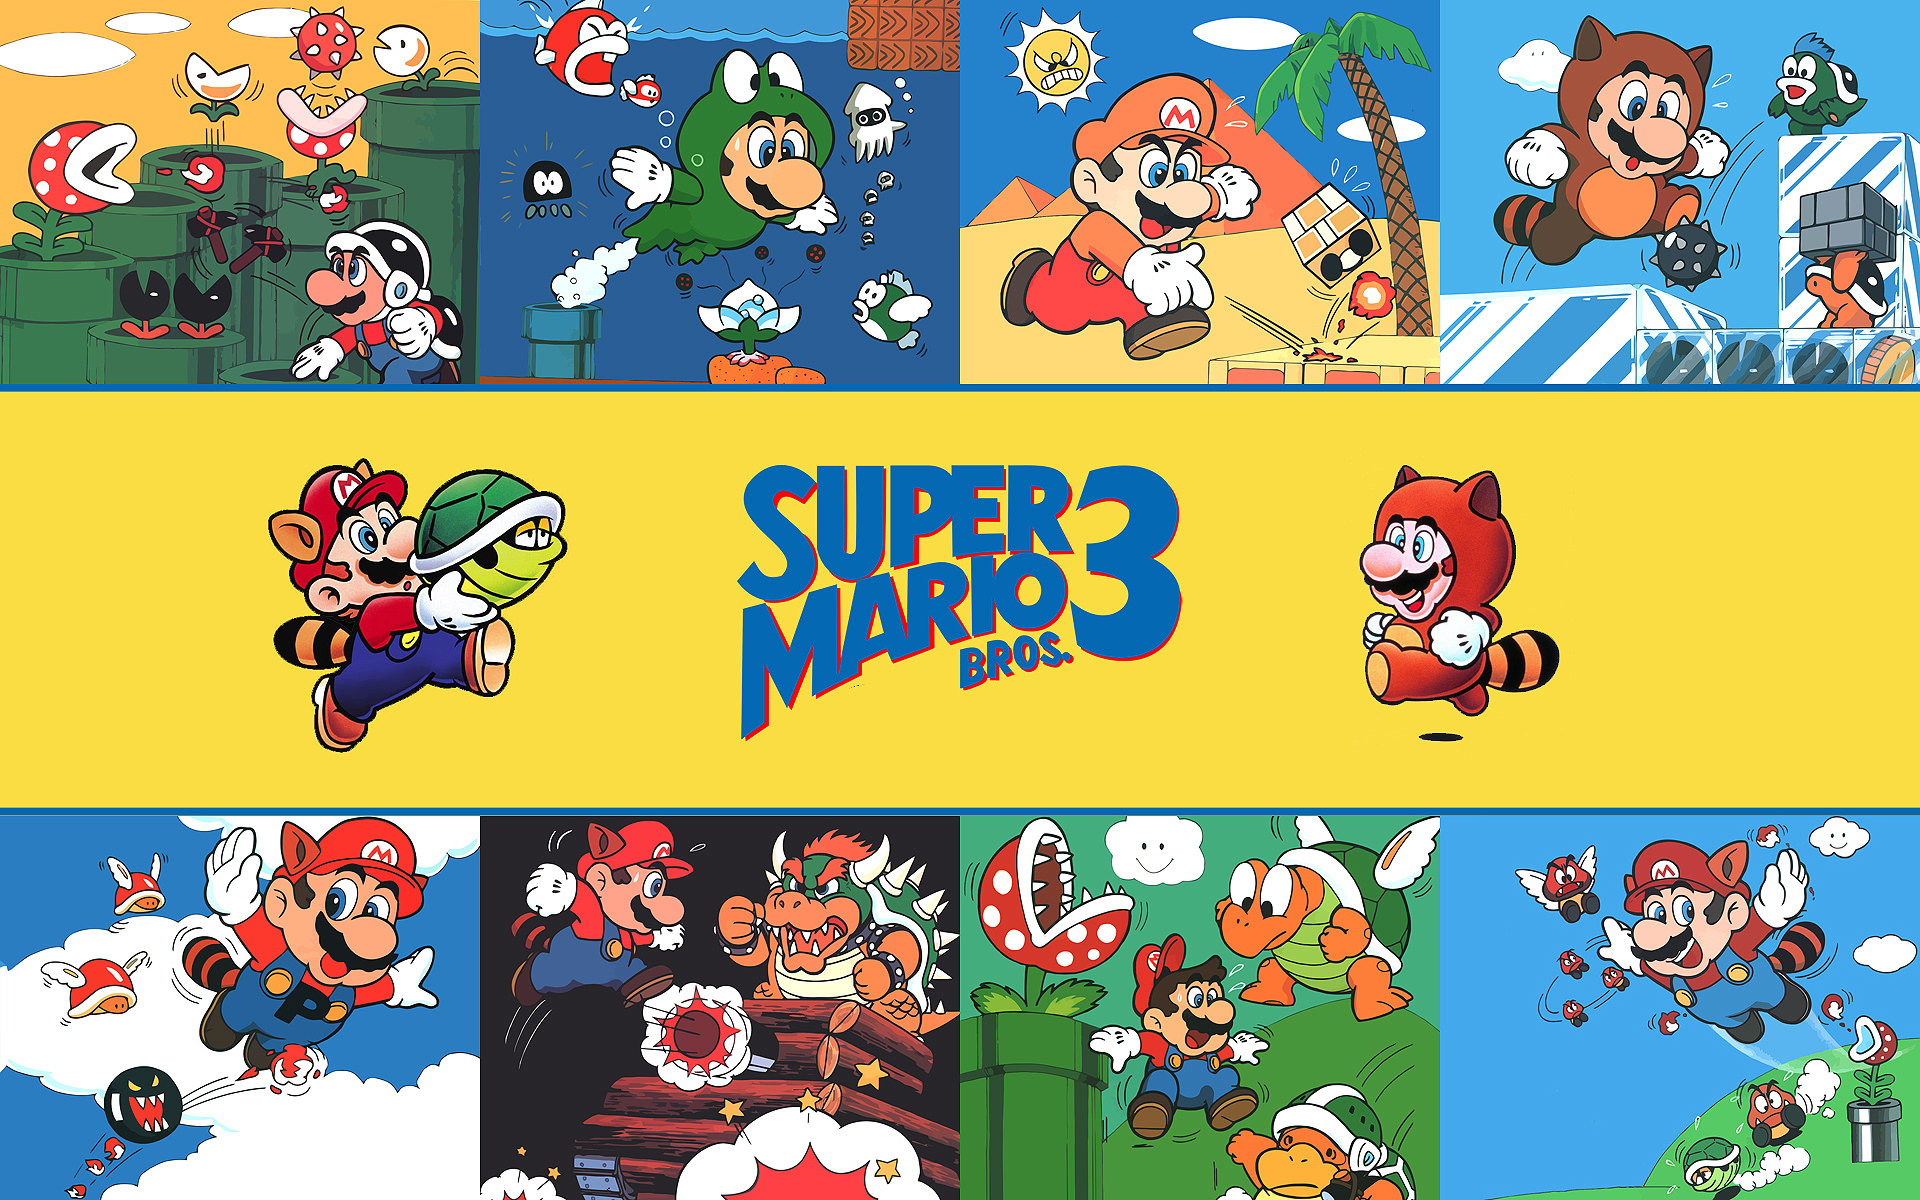 mario bros 3 background